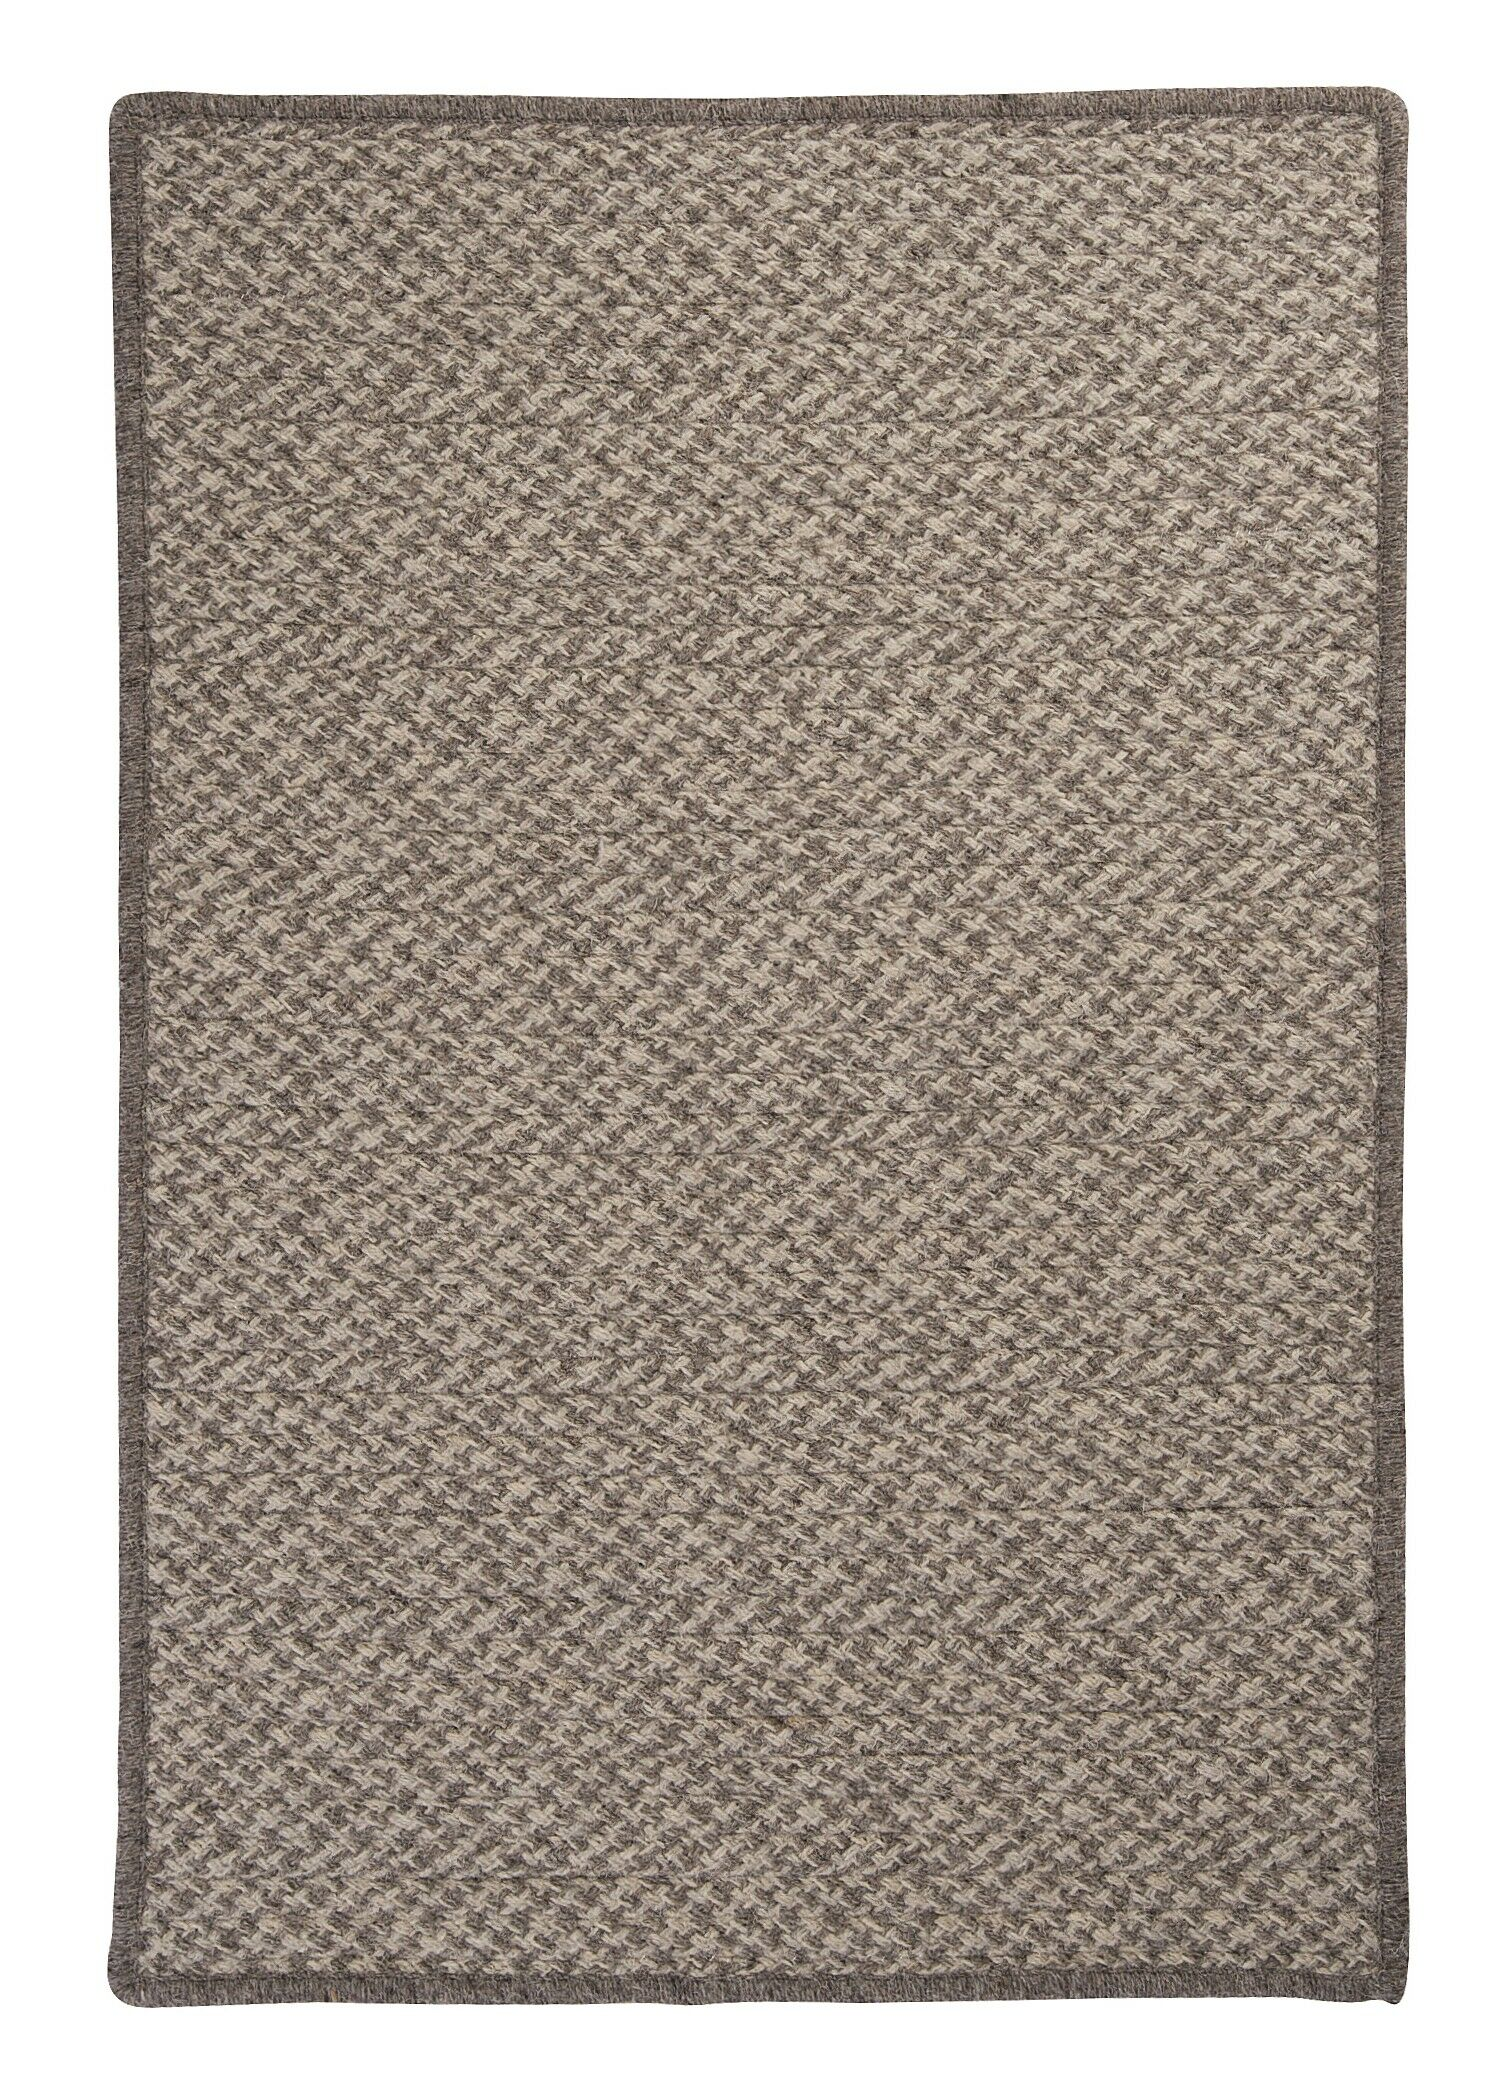 Natural Wool Houndstooth Braided Latte Area Rug Rug Size: Rectangle 10' x 13'